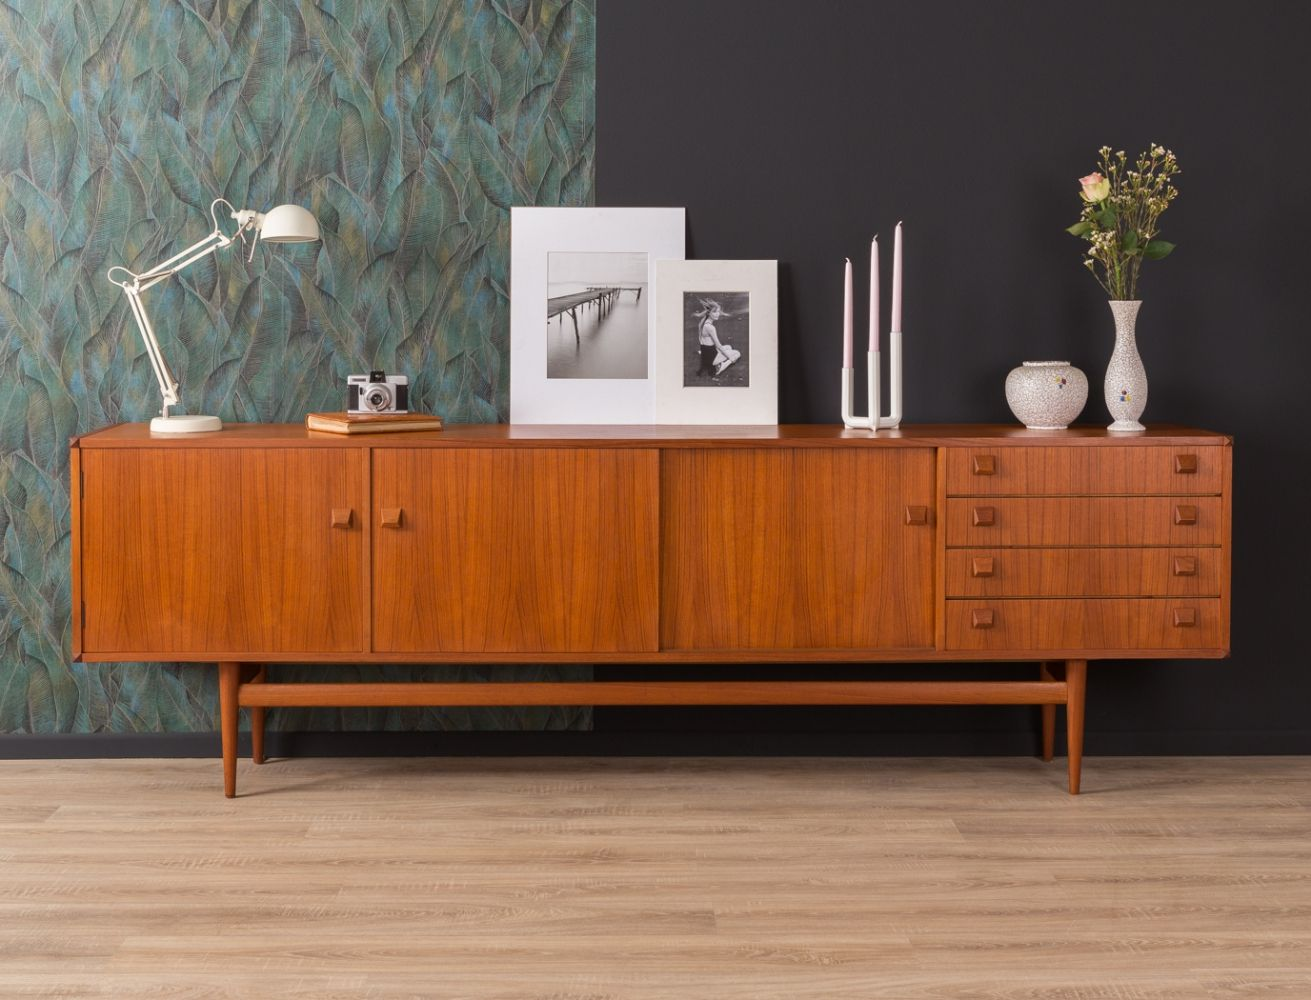 For Sale German Sideboard By Musterring From The 1950s Vintage Cabinets Mid Century Sideboard Furniture